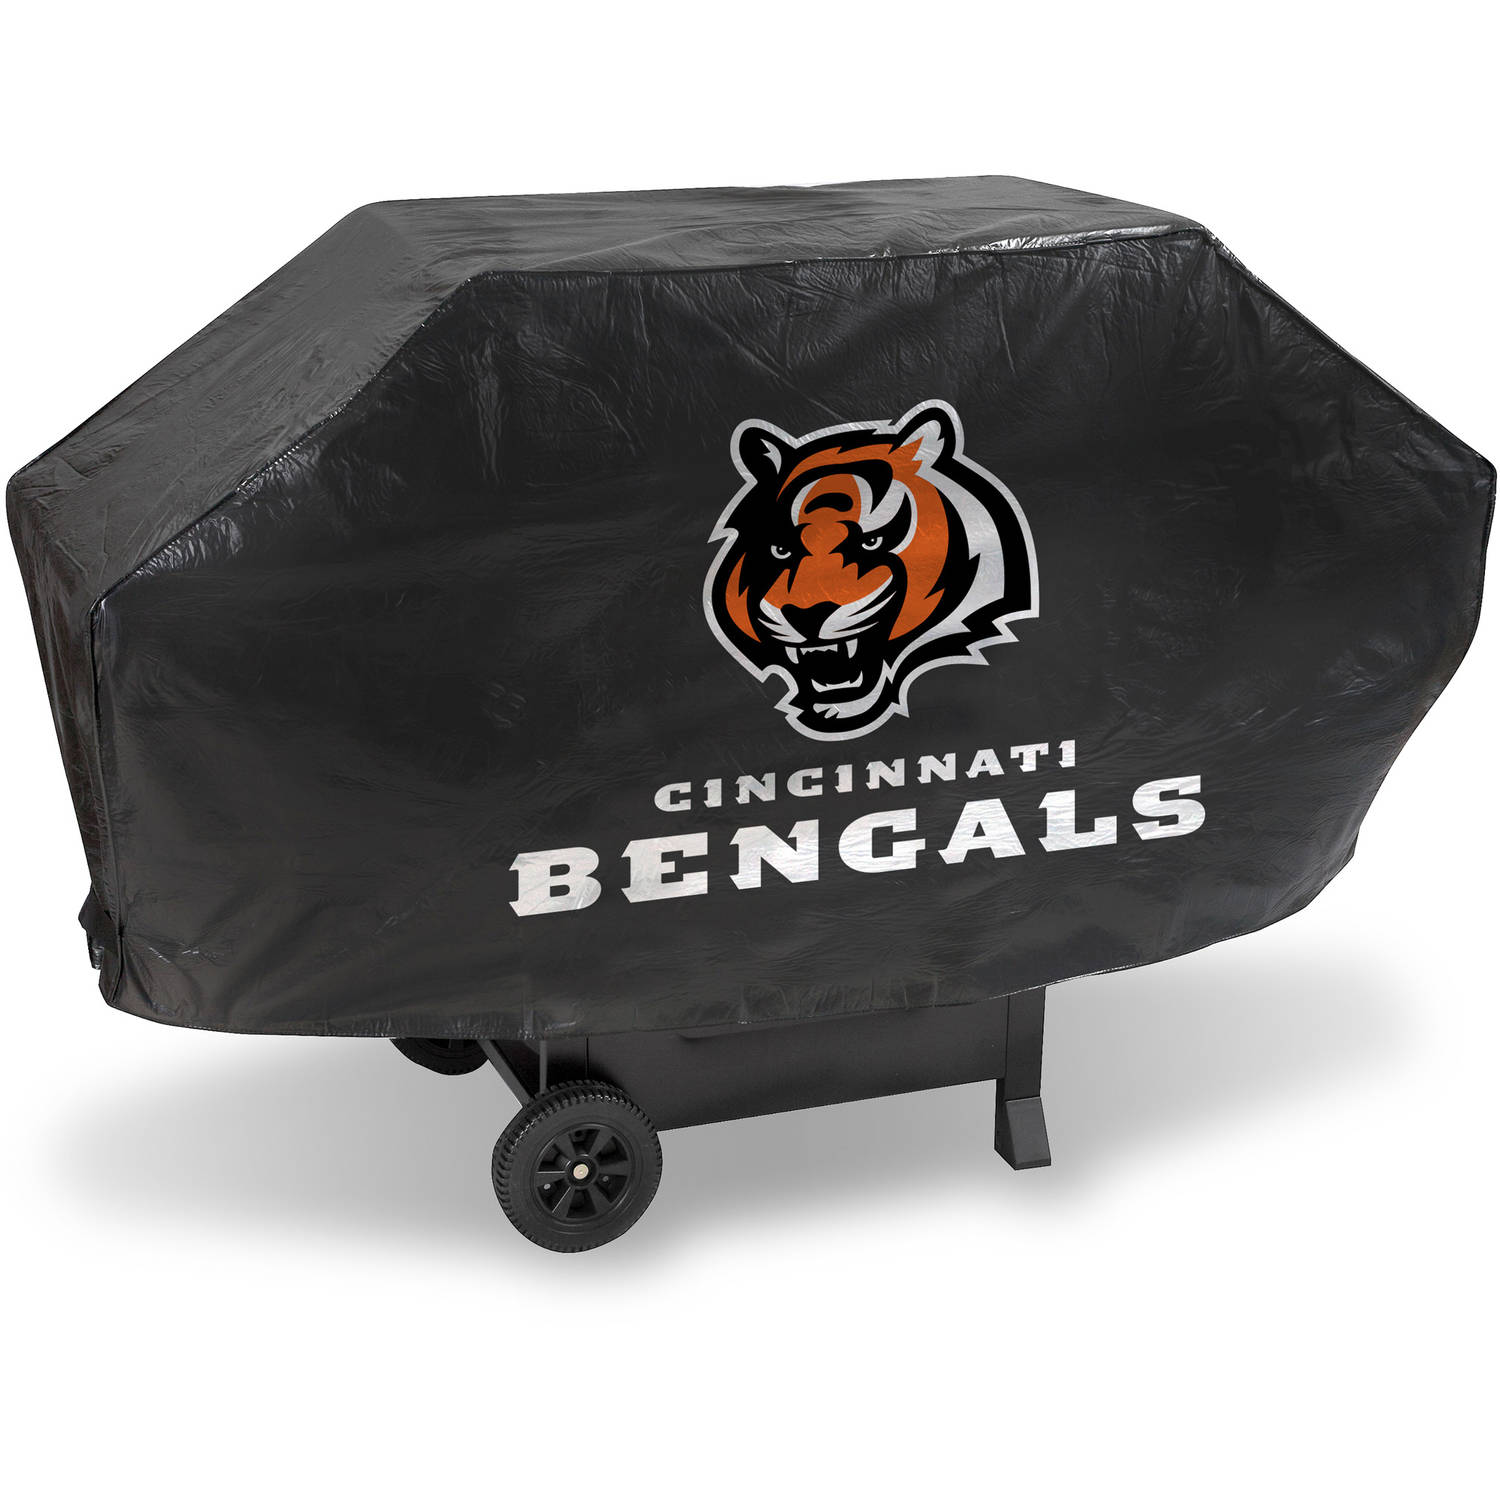 Cincinnati Bengals Deluxe Grill Cover by Rico